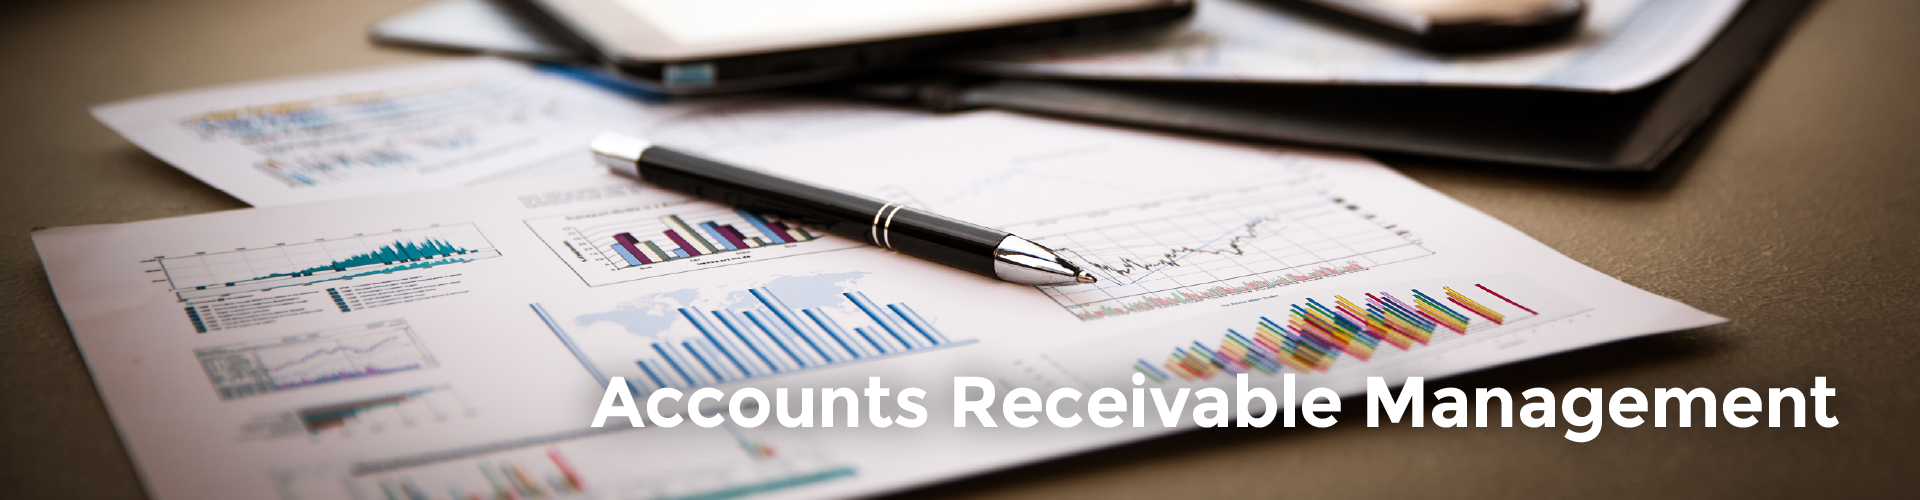 SLIDER_1920x500_accounts_receivable_mgmt